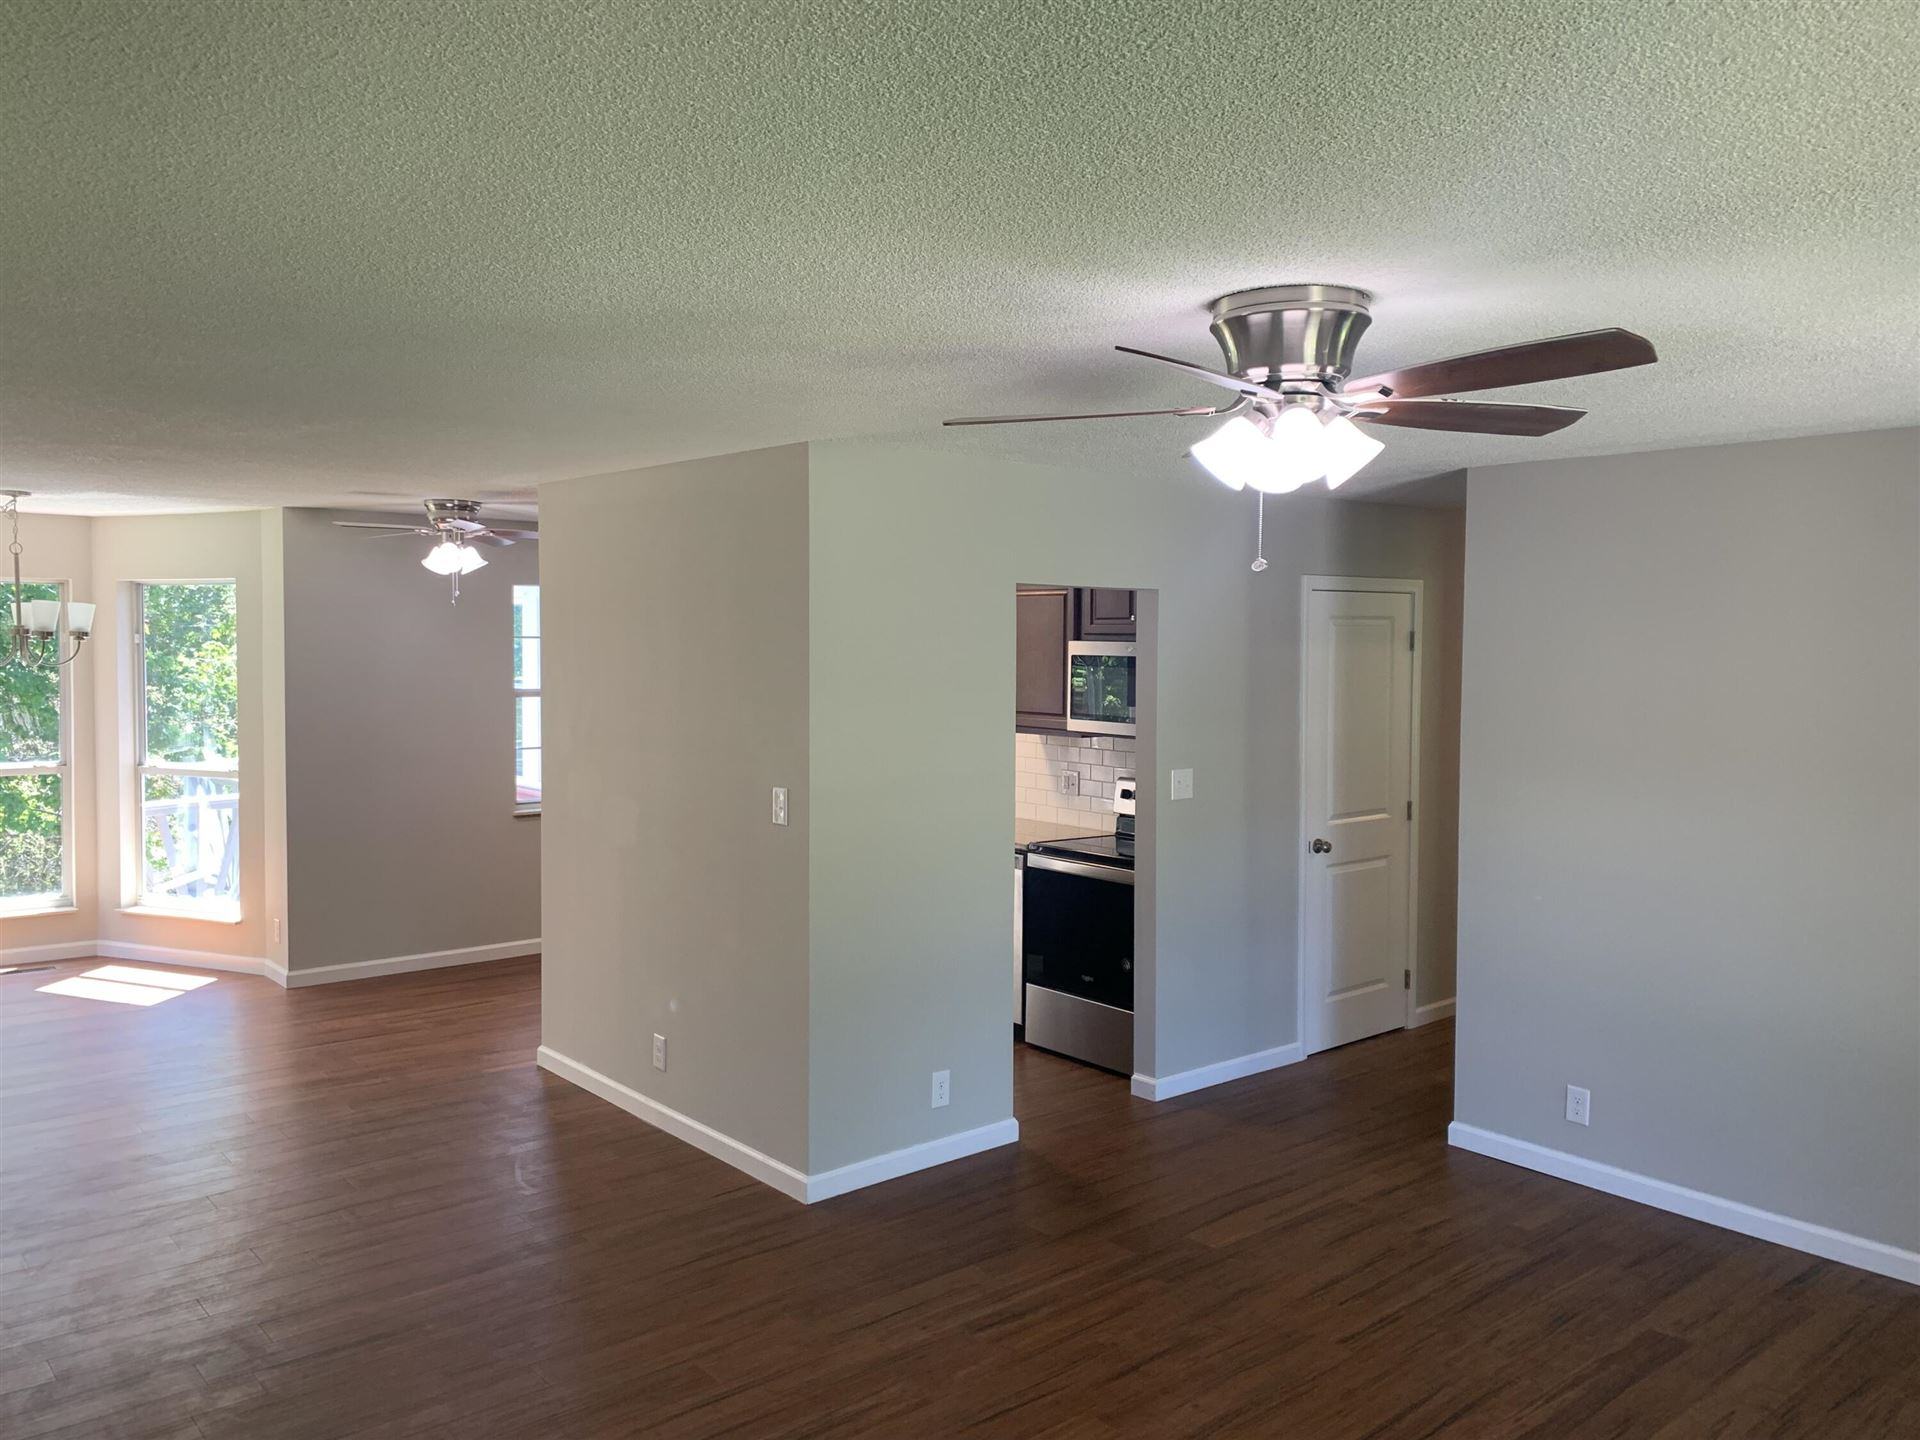 Photo of 1708 Murray Drive, Knoxville, TN 37912 (MLS # 1166225)